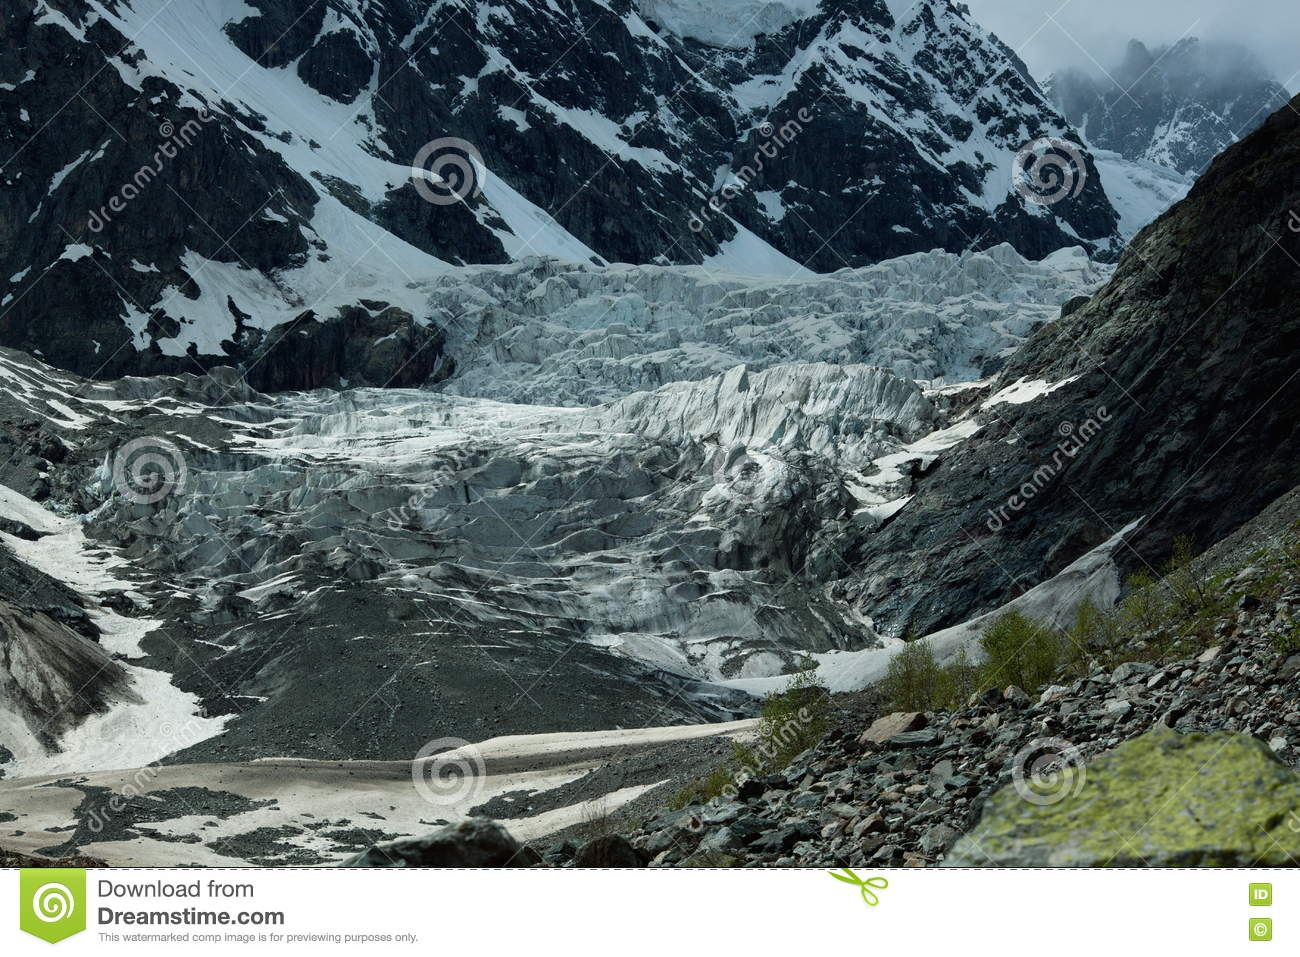 Landscape photo of the glacier in the mountains of Georgia